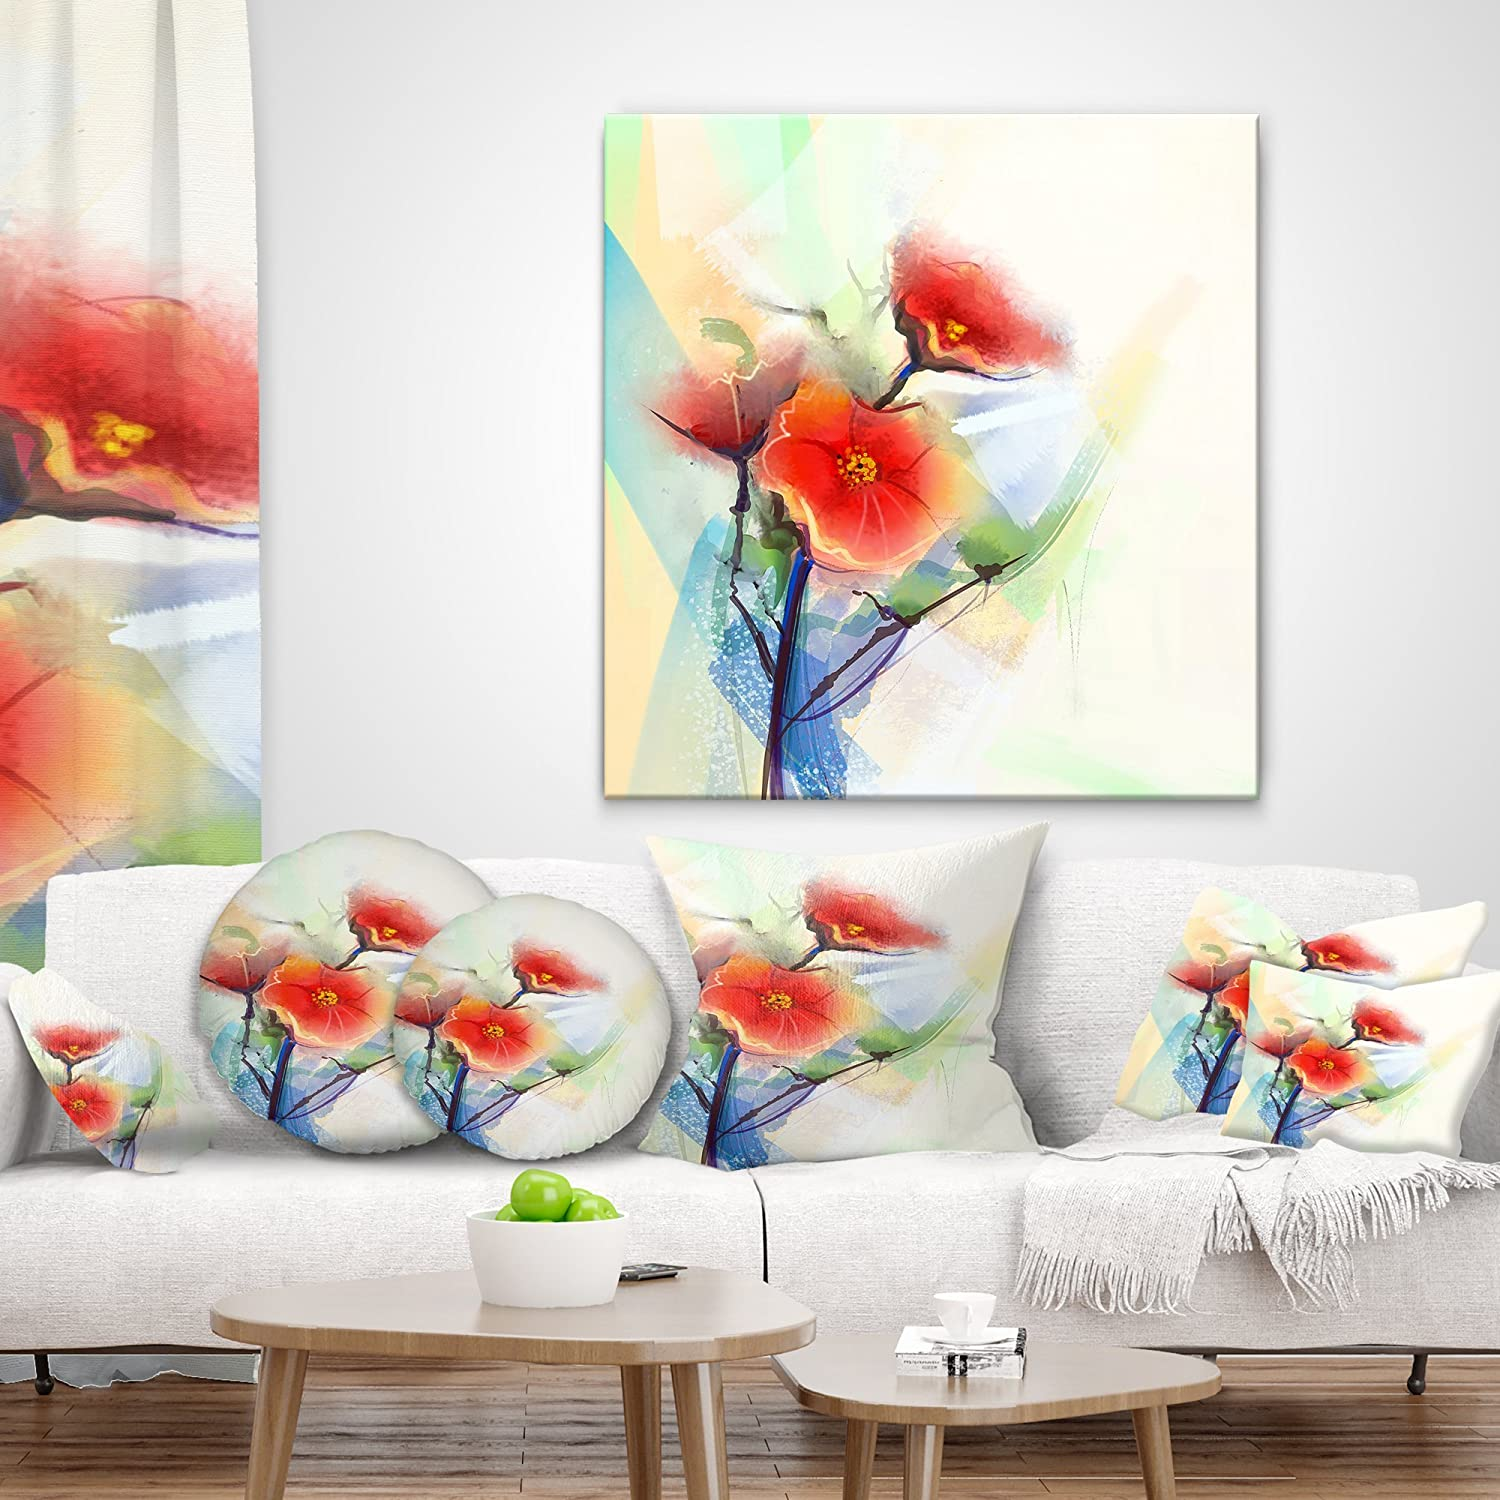 in x 16 in Insert Printed On Both Side Designart CU14094-16-16 Red Poppy Flowers on Grunge Back Floral Cushion Cover for Living Room Sofa Throw Pillow 16 in